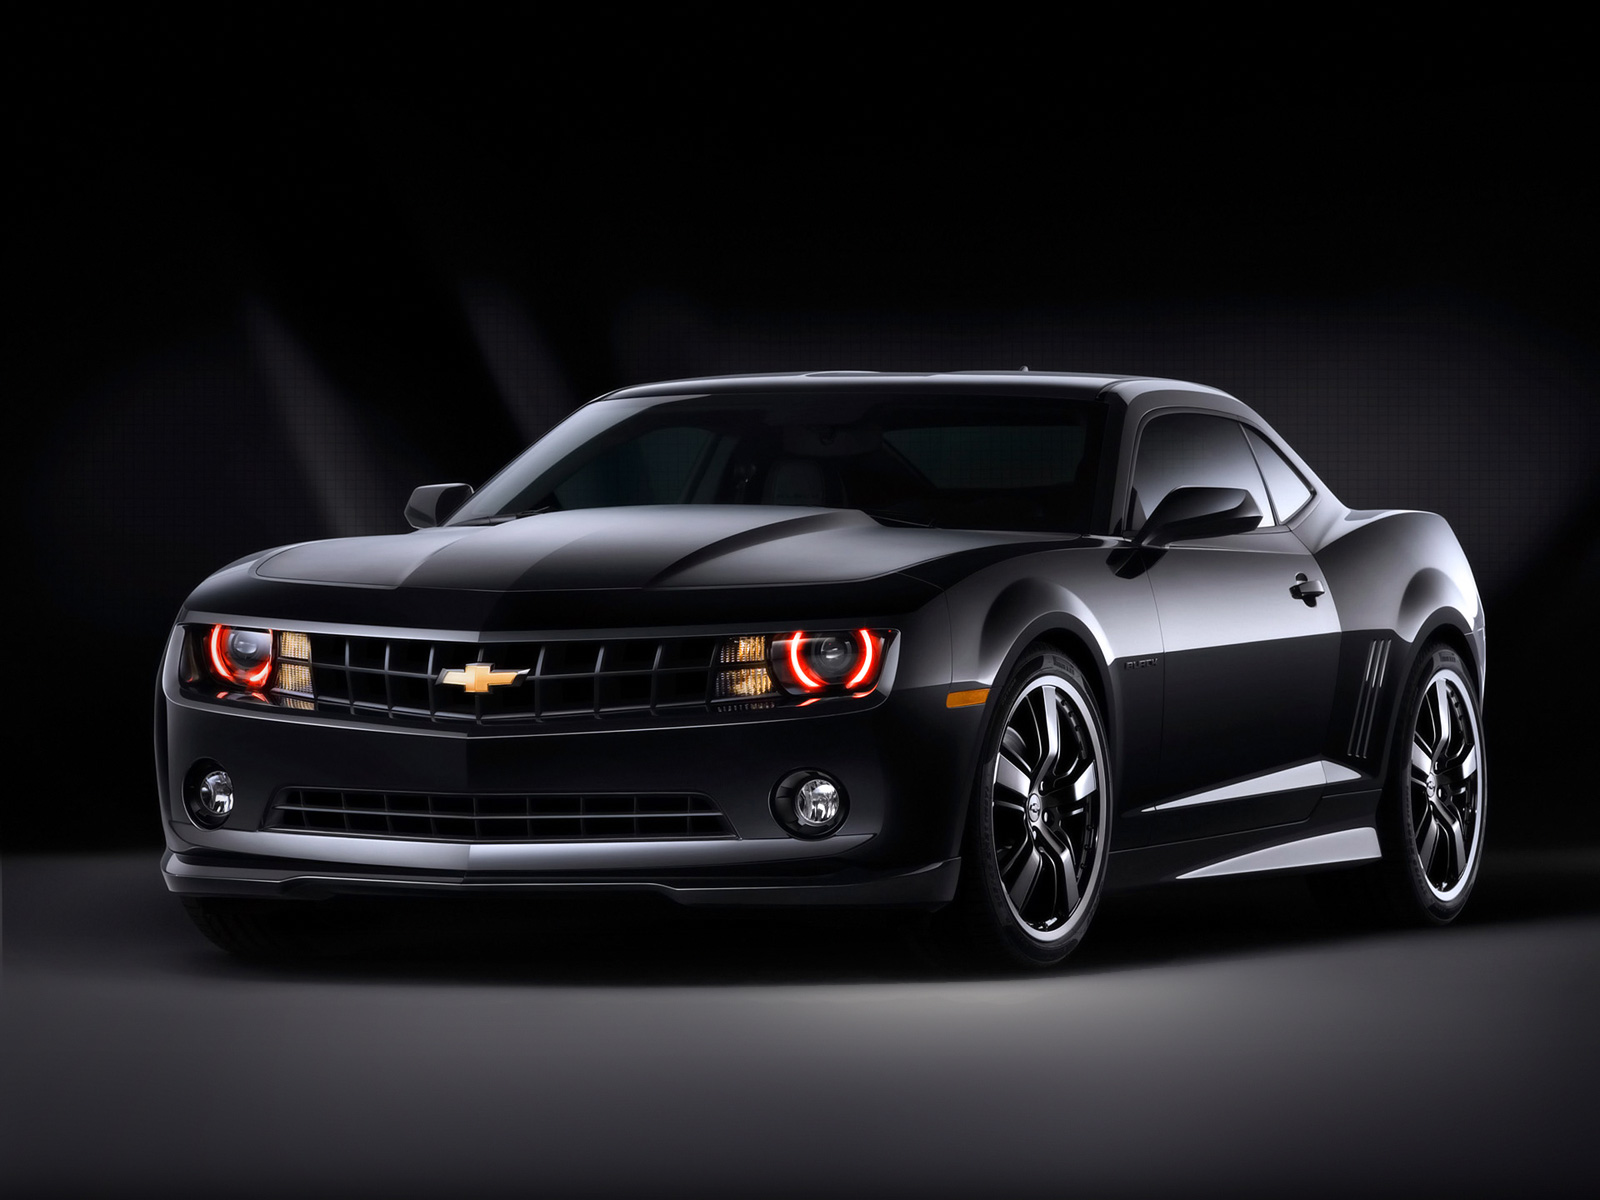 Chevrolet CamaroHD Wallpapers 1600x1200